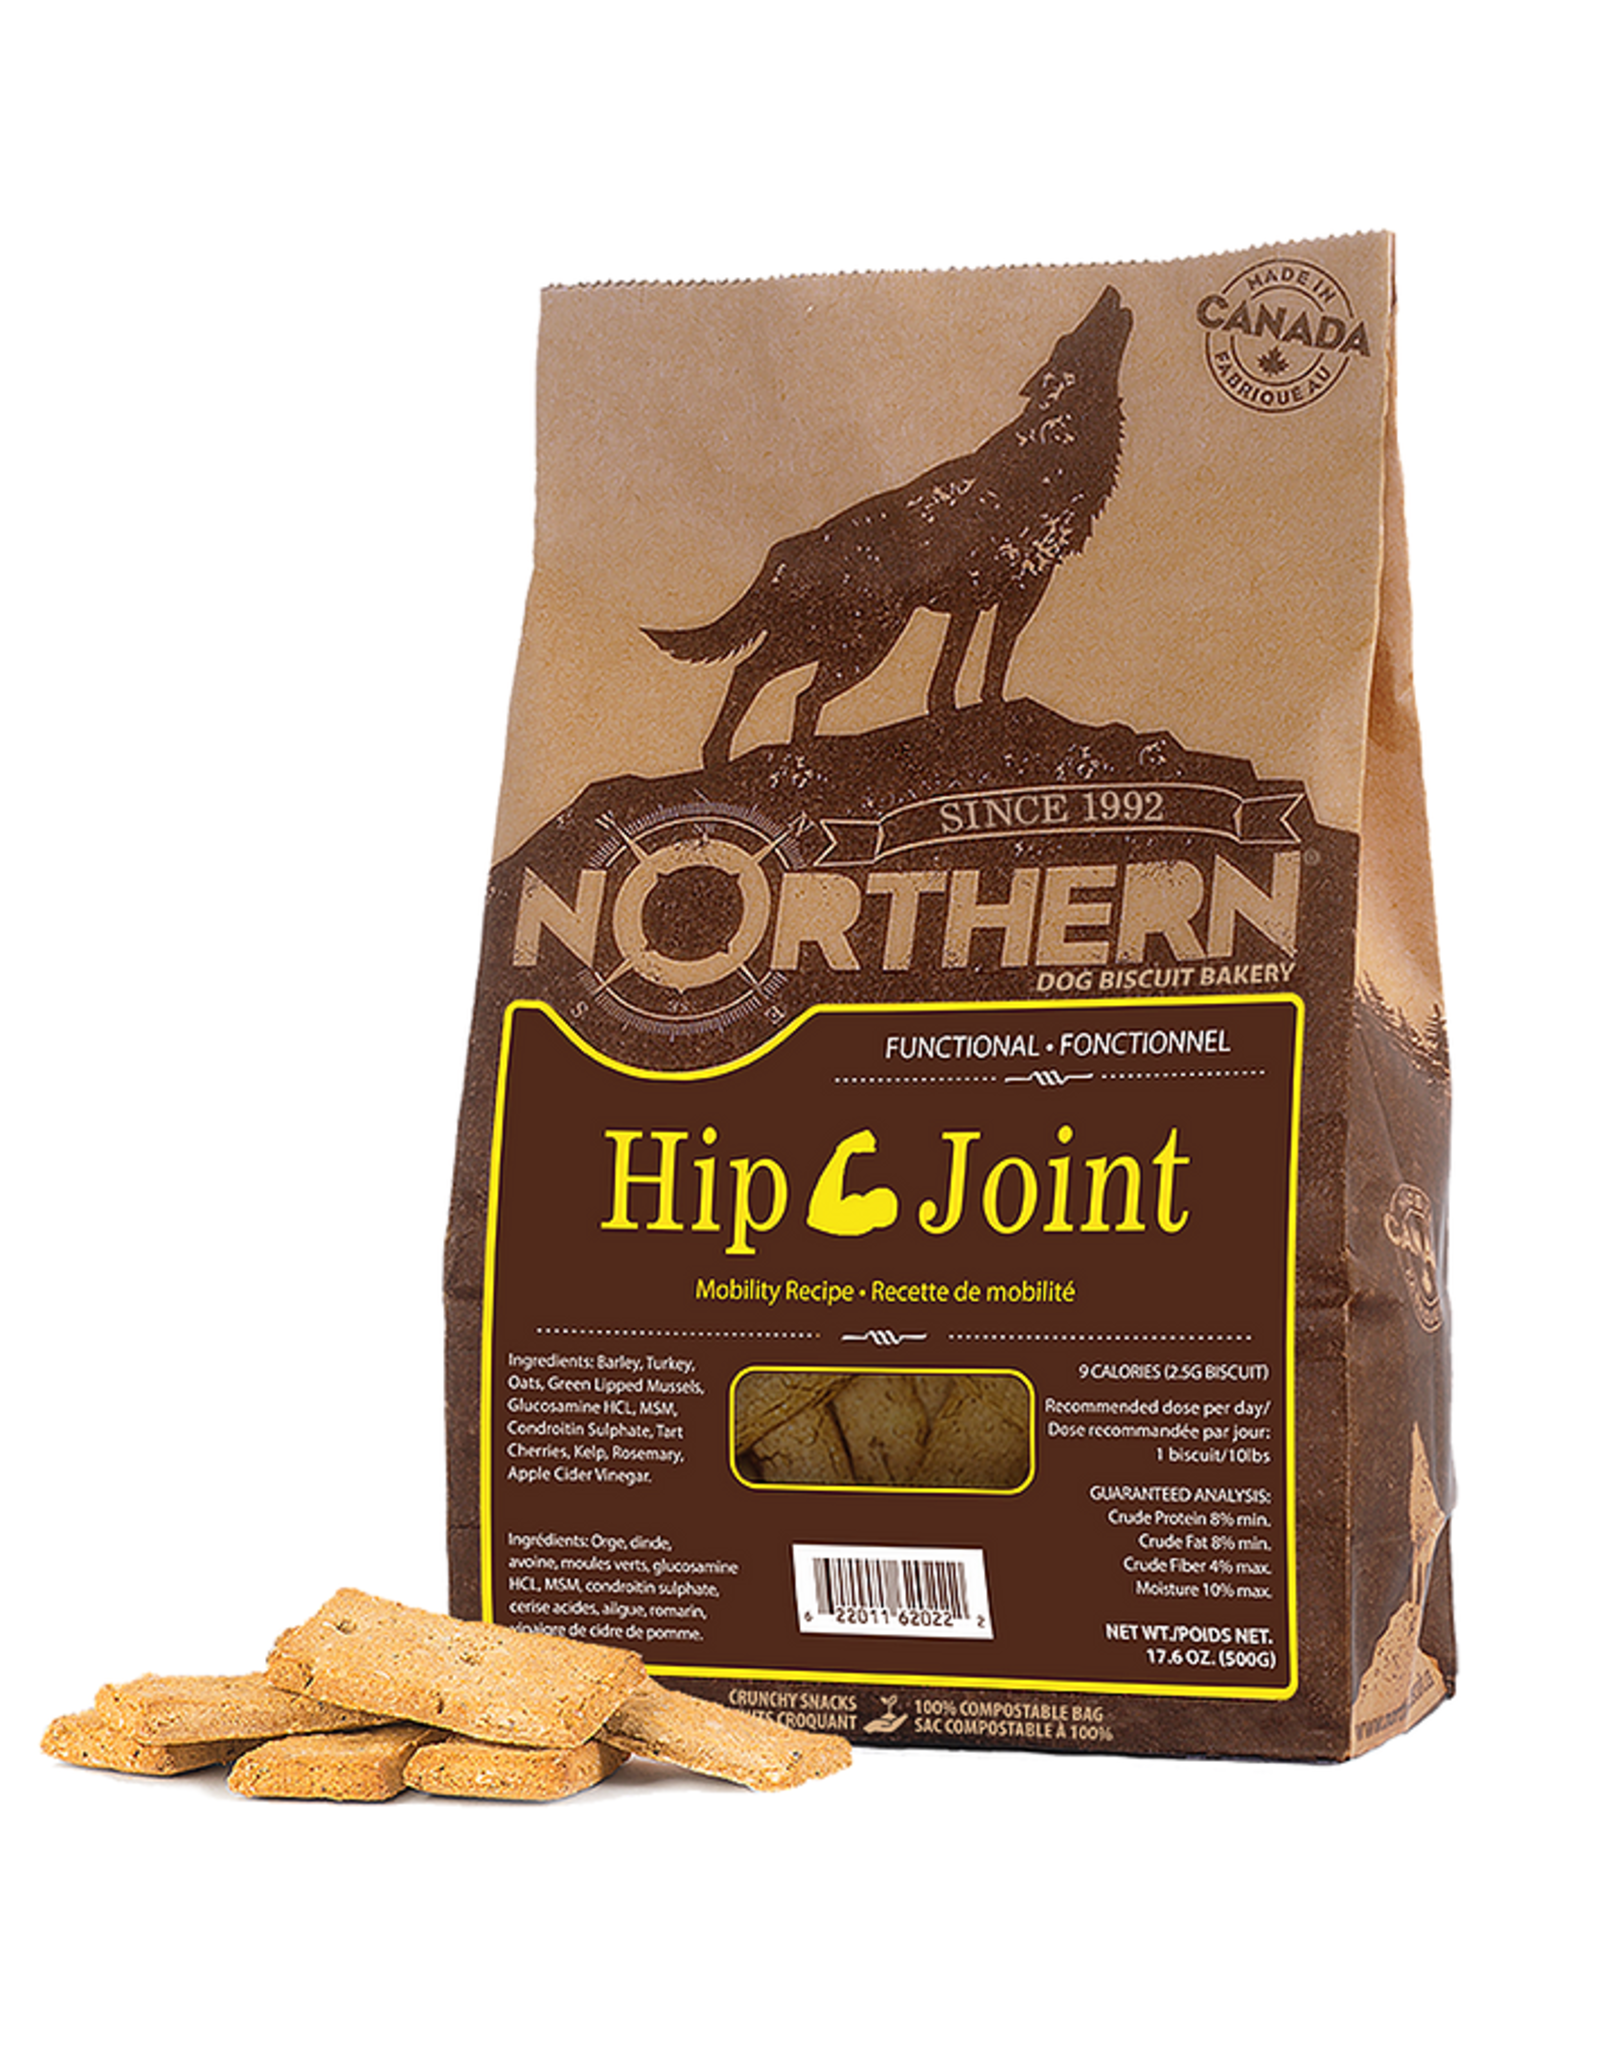 Northern Pet Products Northern Functionals - Hip & Joint